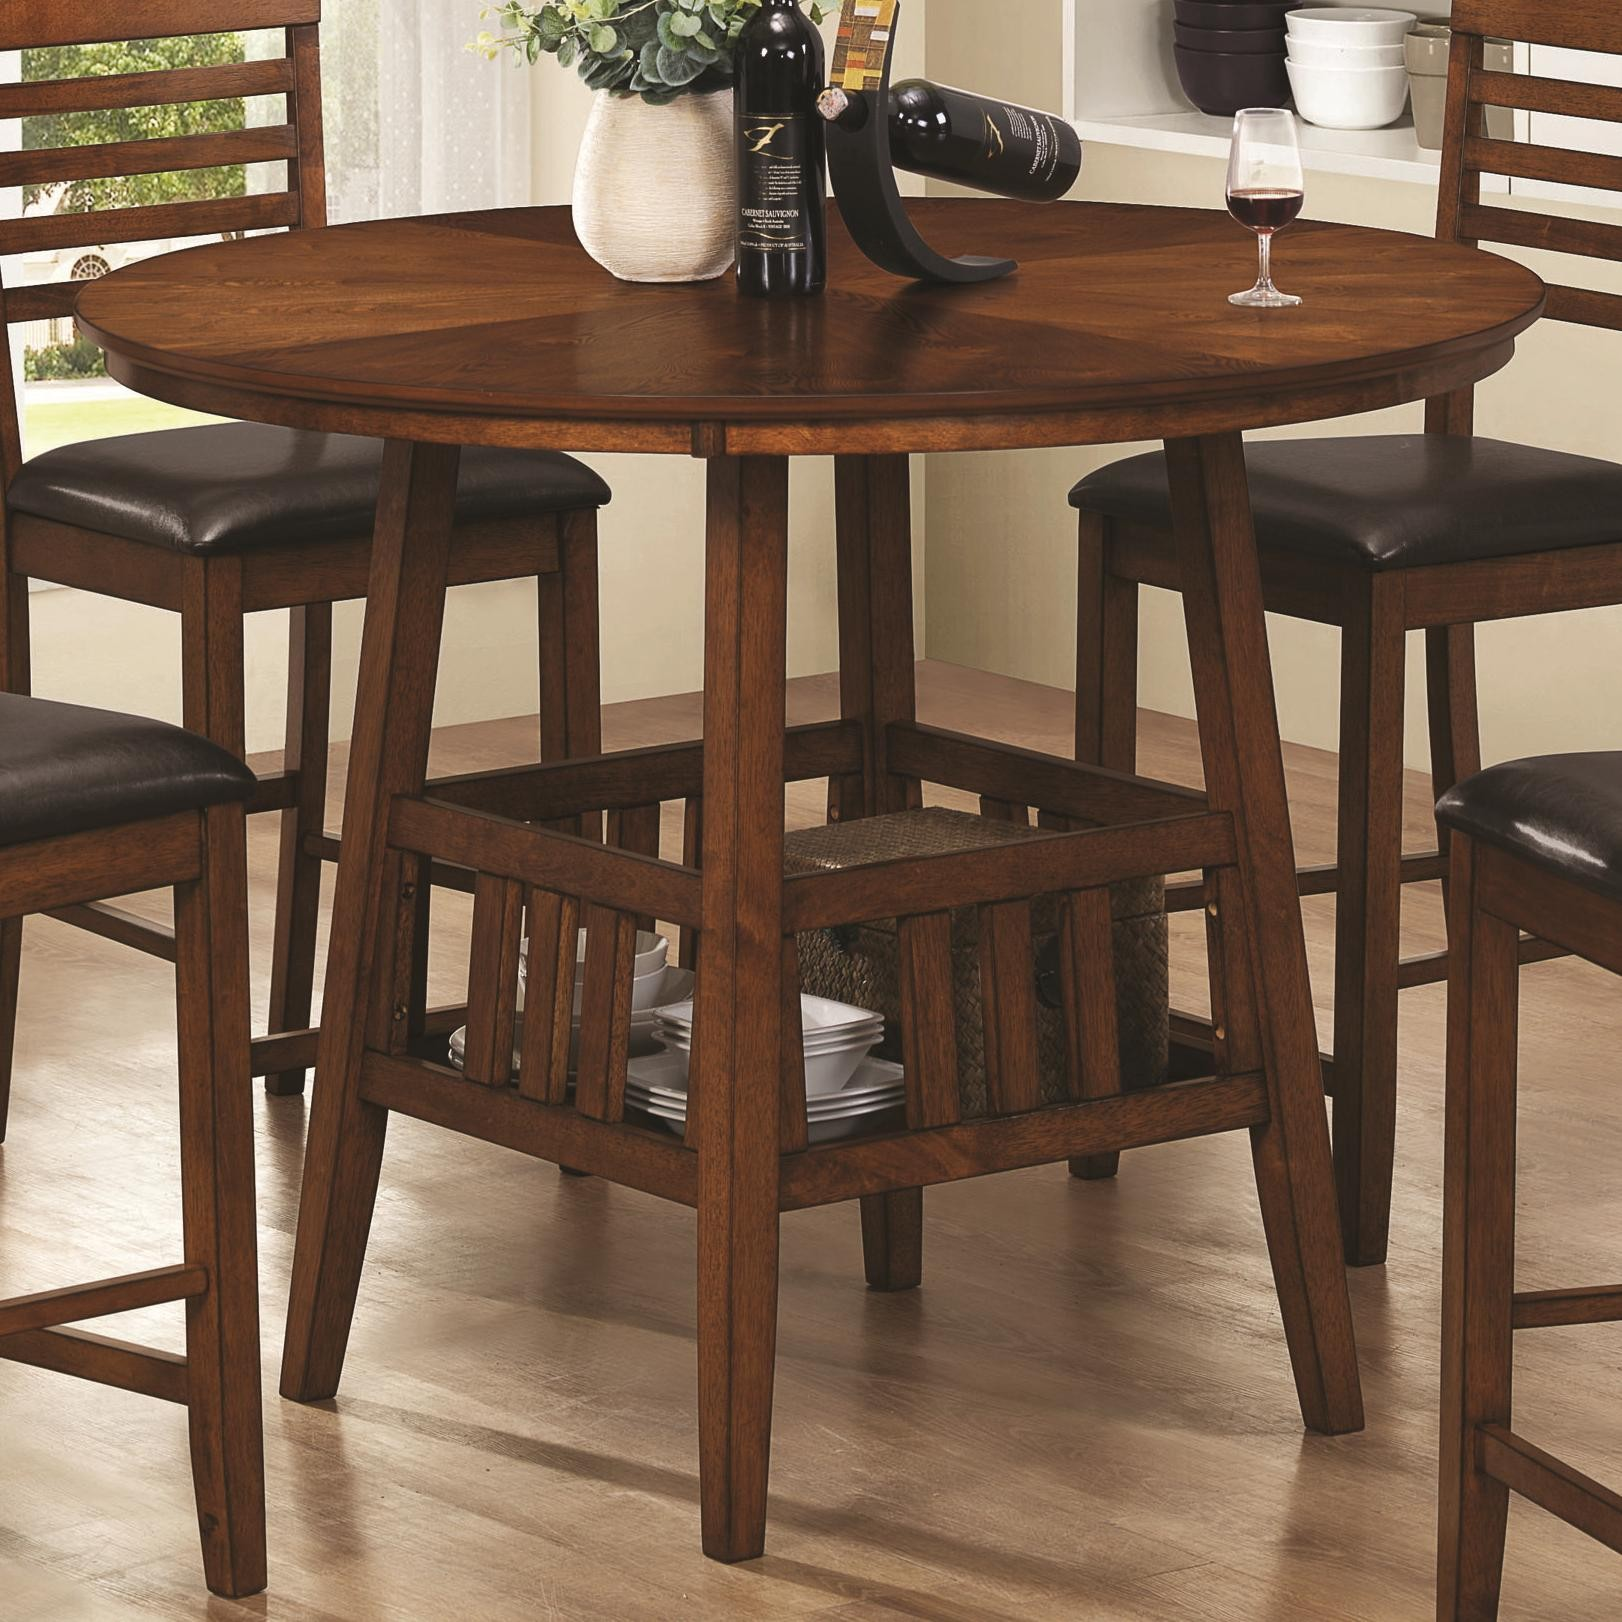 Tall Kitchen Tables Gorgeous Brown Tall Kitchen Table With Wine